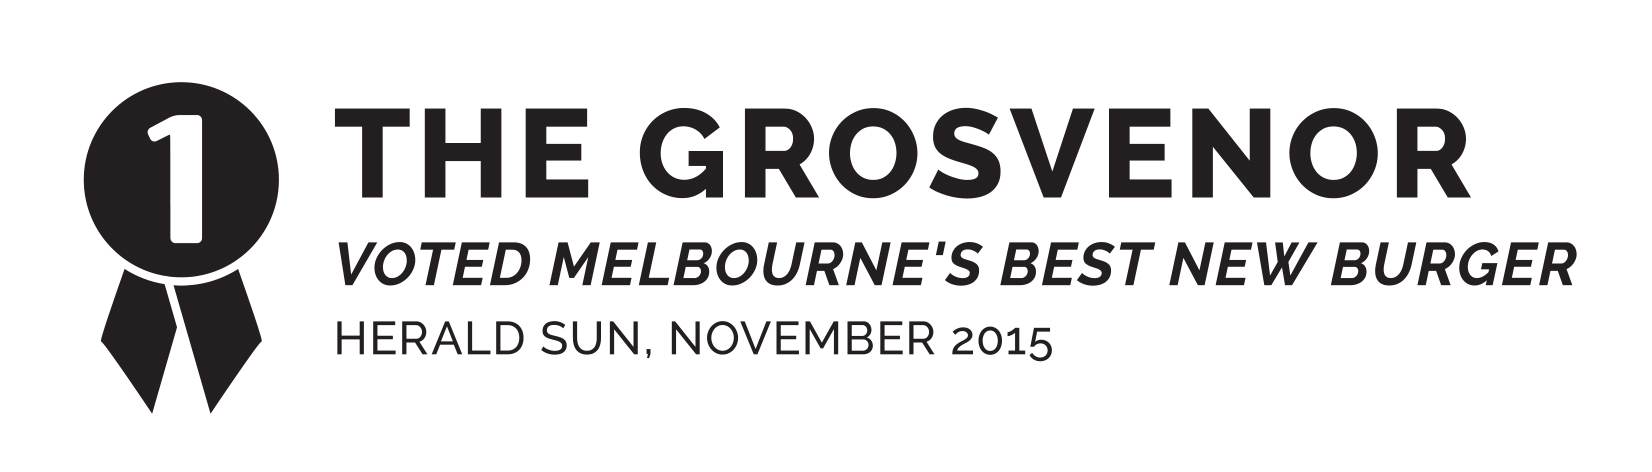 STKBB | The Grosvenor, Melbourne's best new burger as voted by the Herald Sun, November 2015